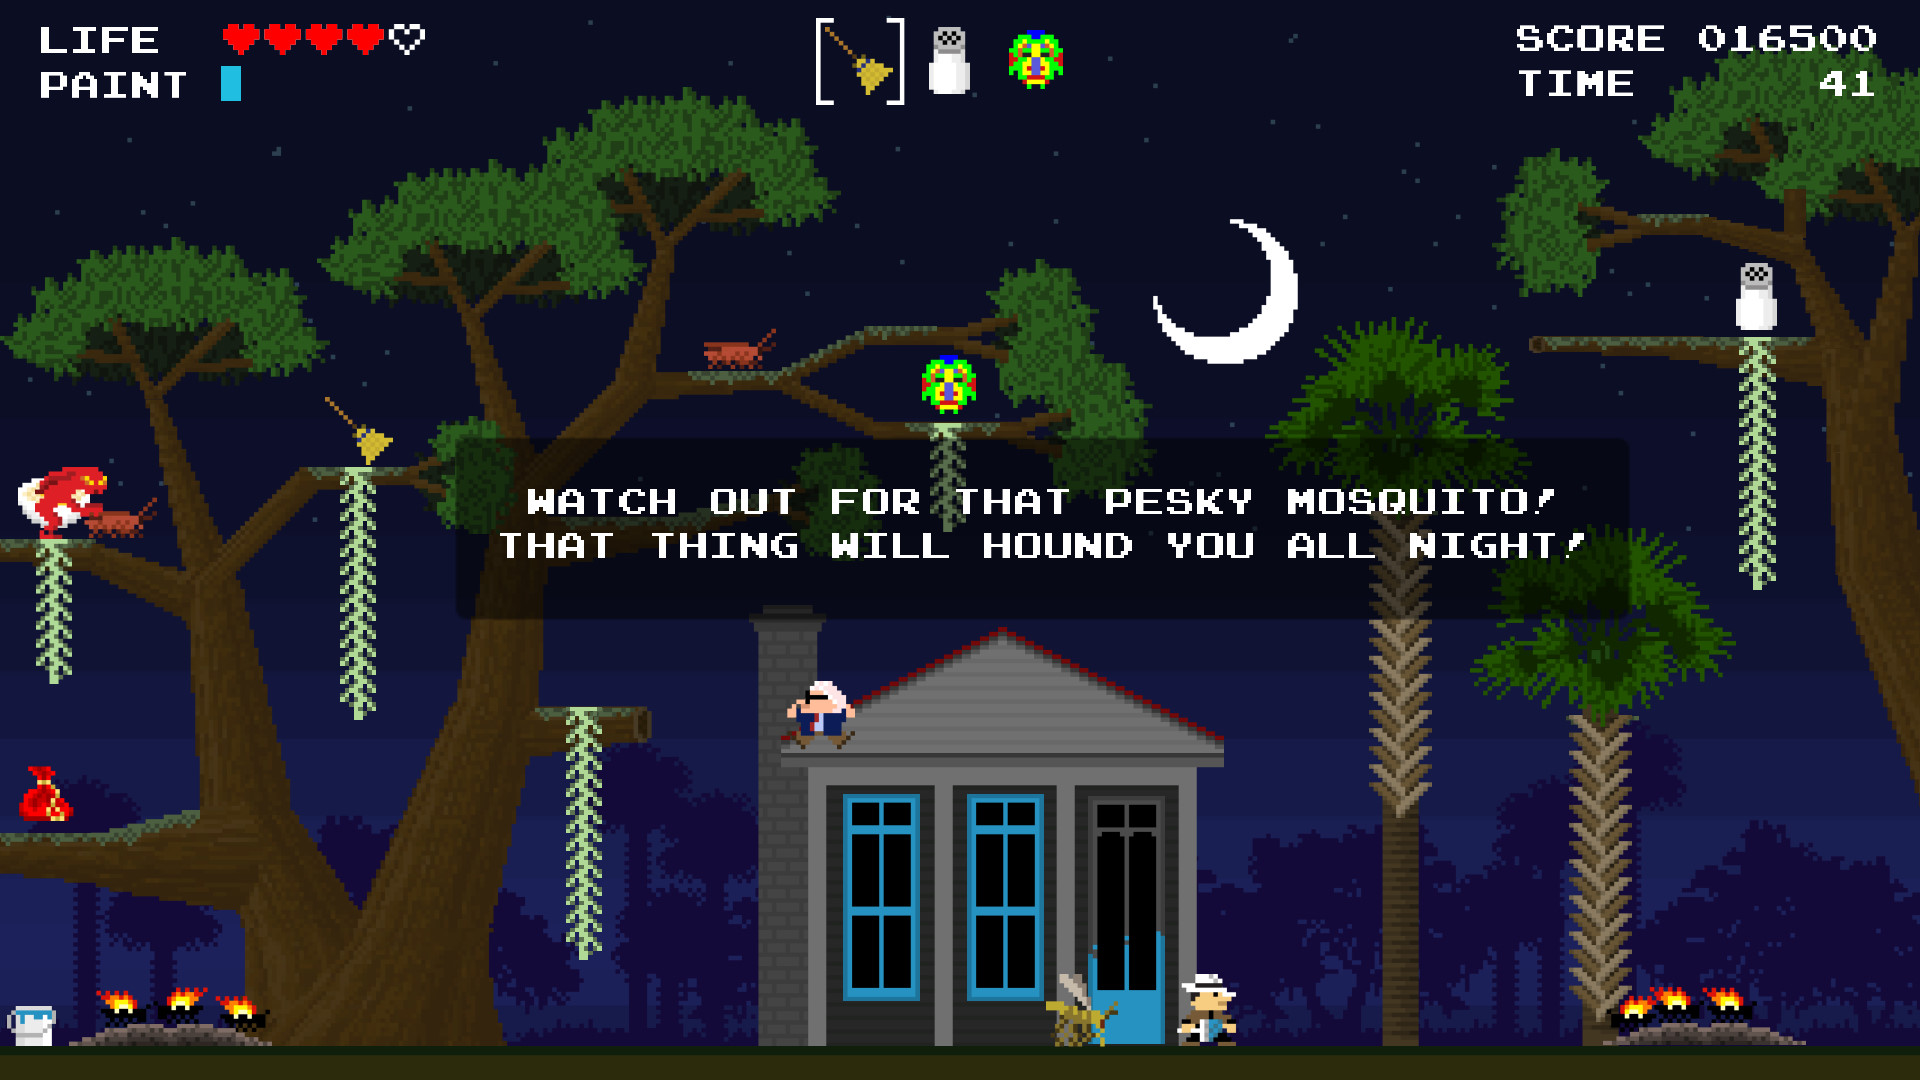 bugs-n-boo-hags_screenshot-for-indie-bits_1920x1080.png